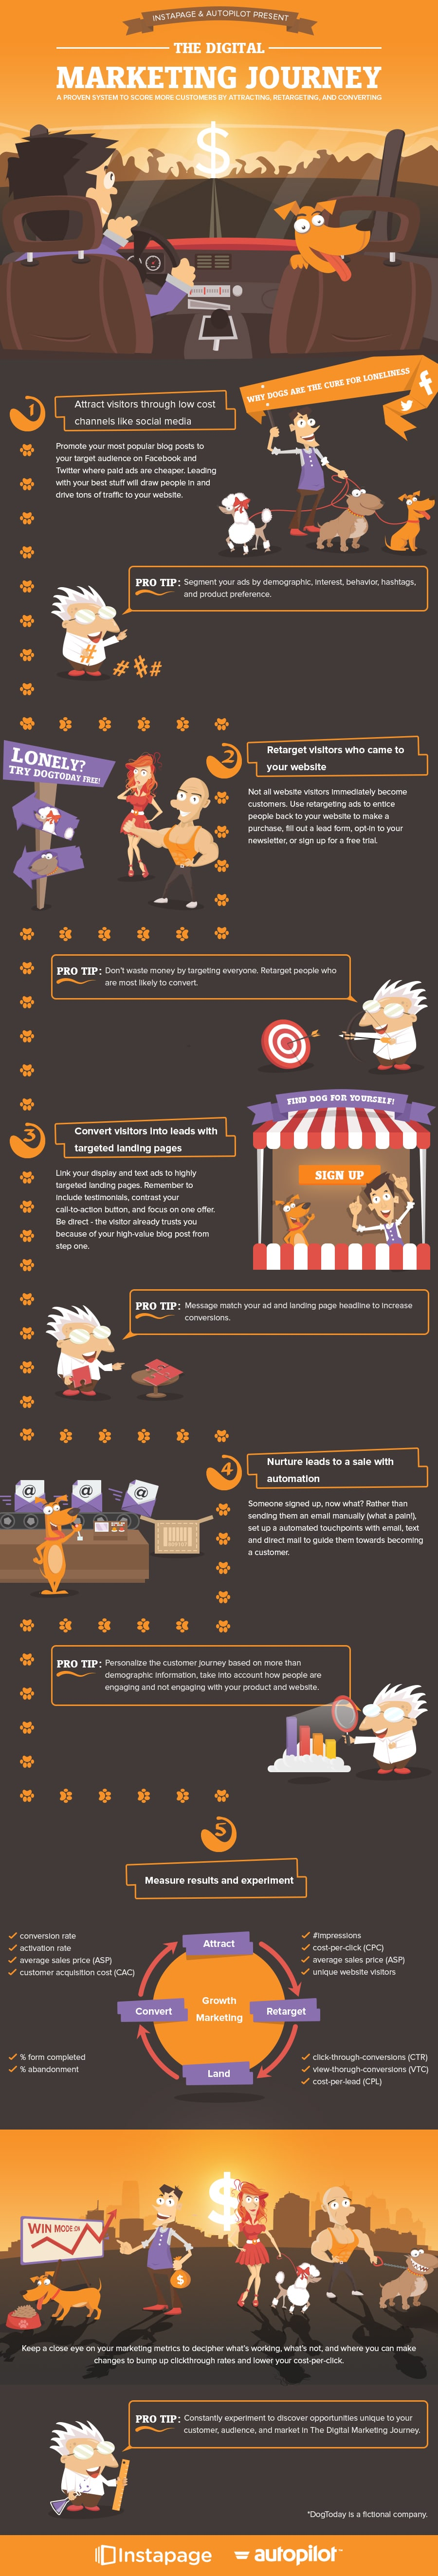 How To Kill The Digital Marketing Game - Infographic